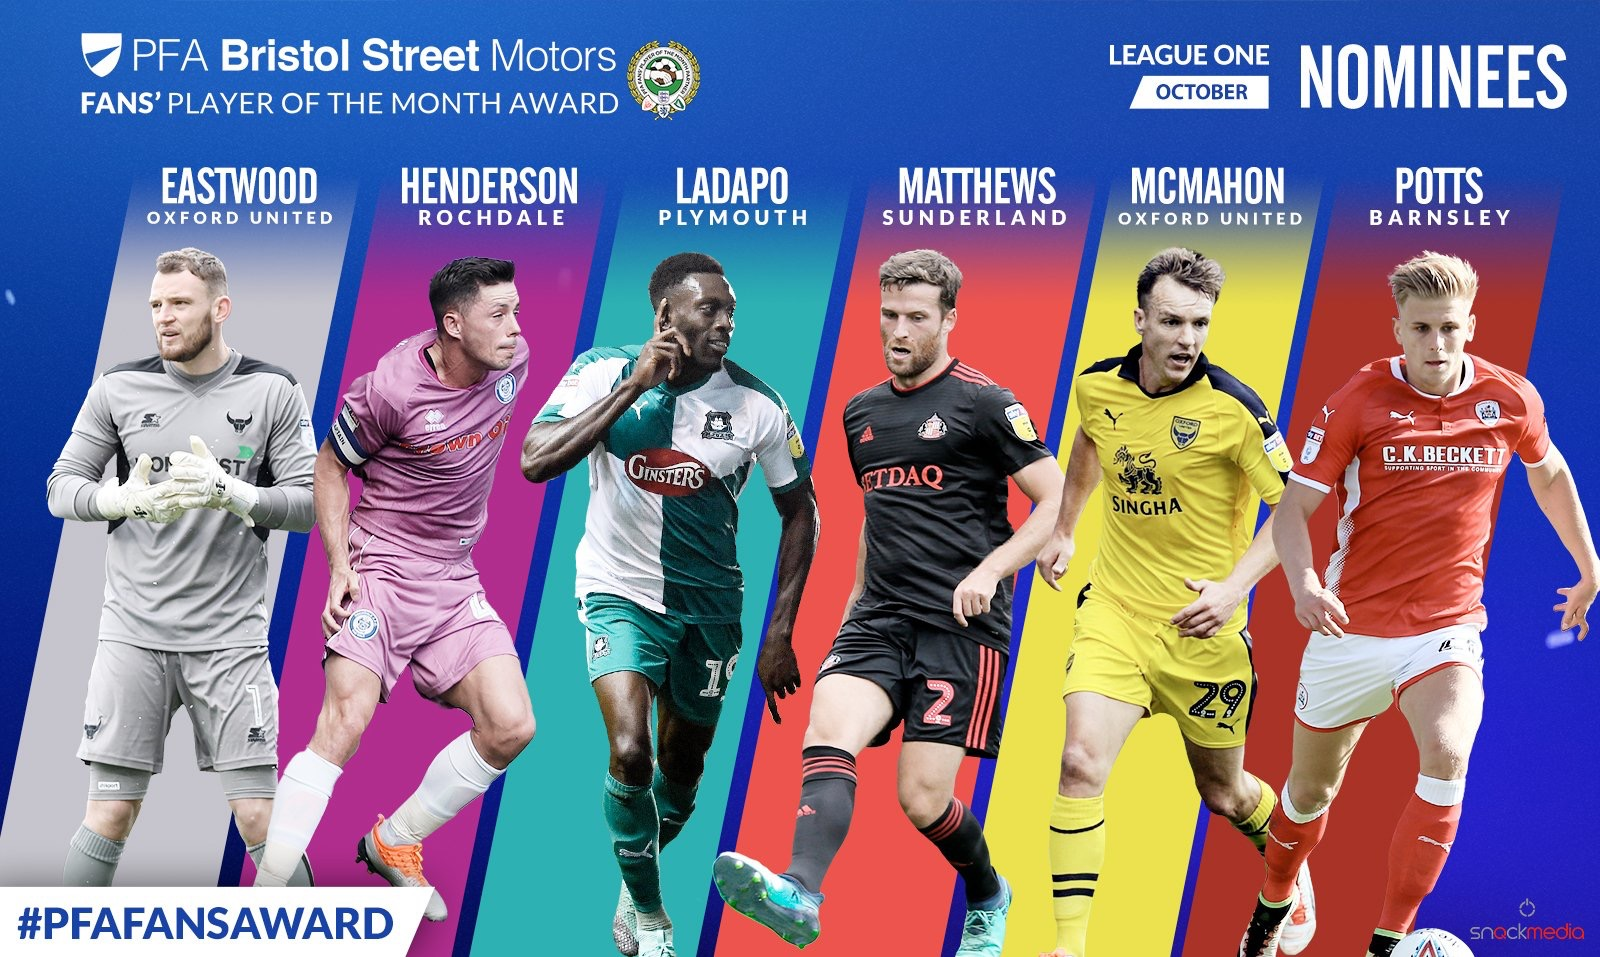 McMahon nominated for PFA award